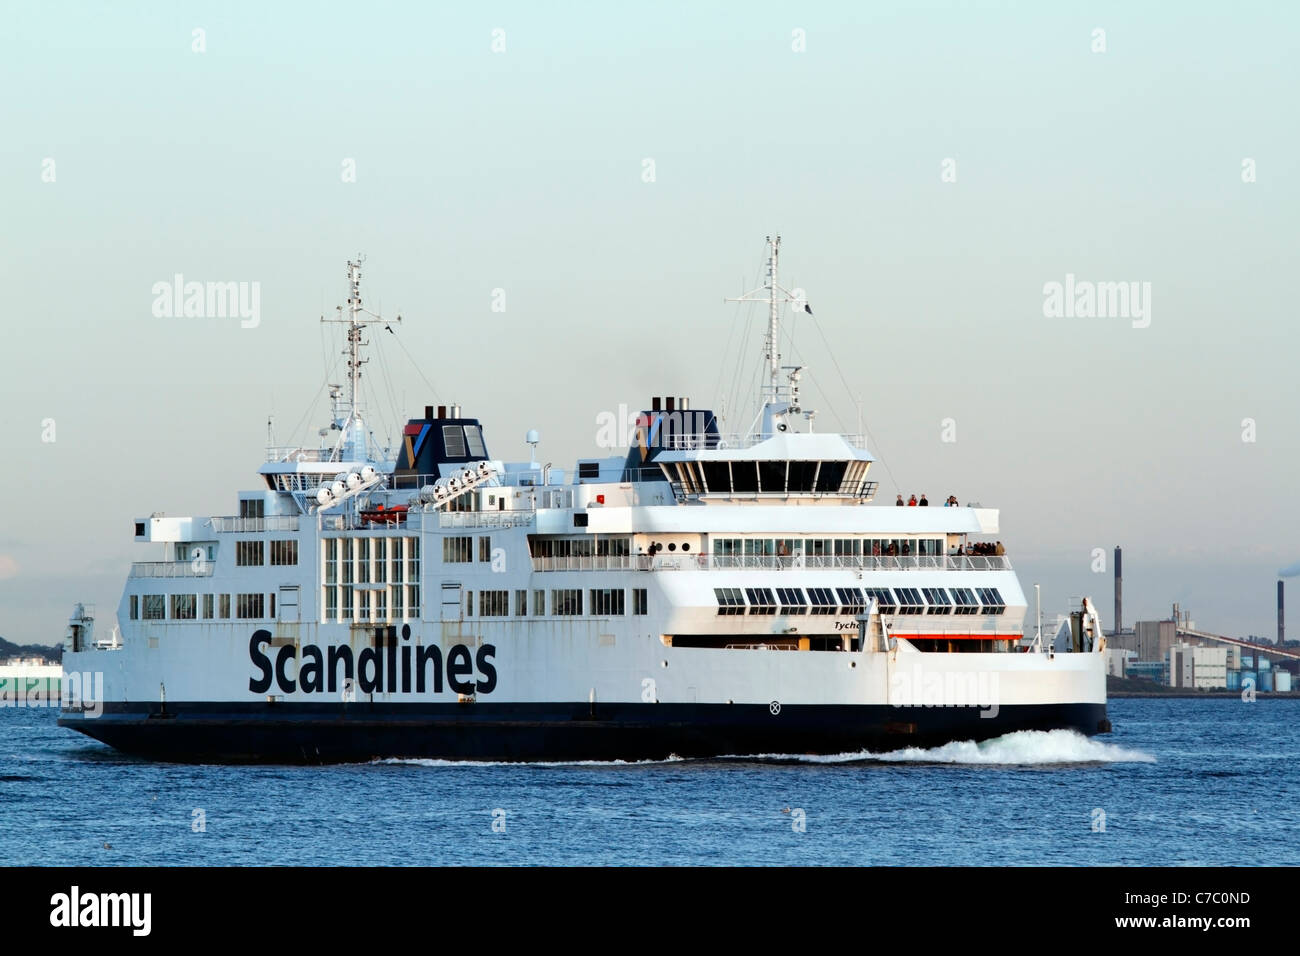 The Scandlines car ferry TYCHO BRAHE  arriving to the harbour of Elsinore, Denmark, from Helsingborg, Sweden - Stock Image